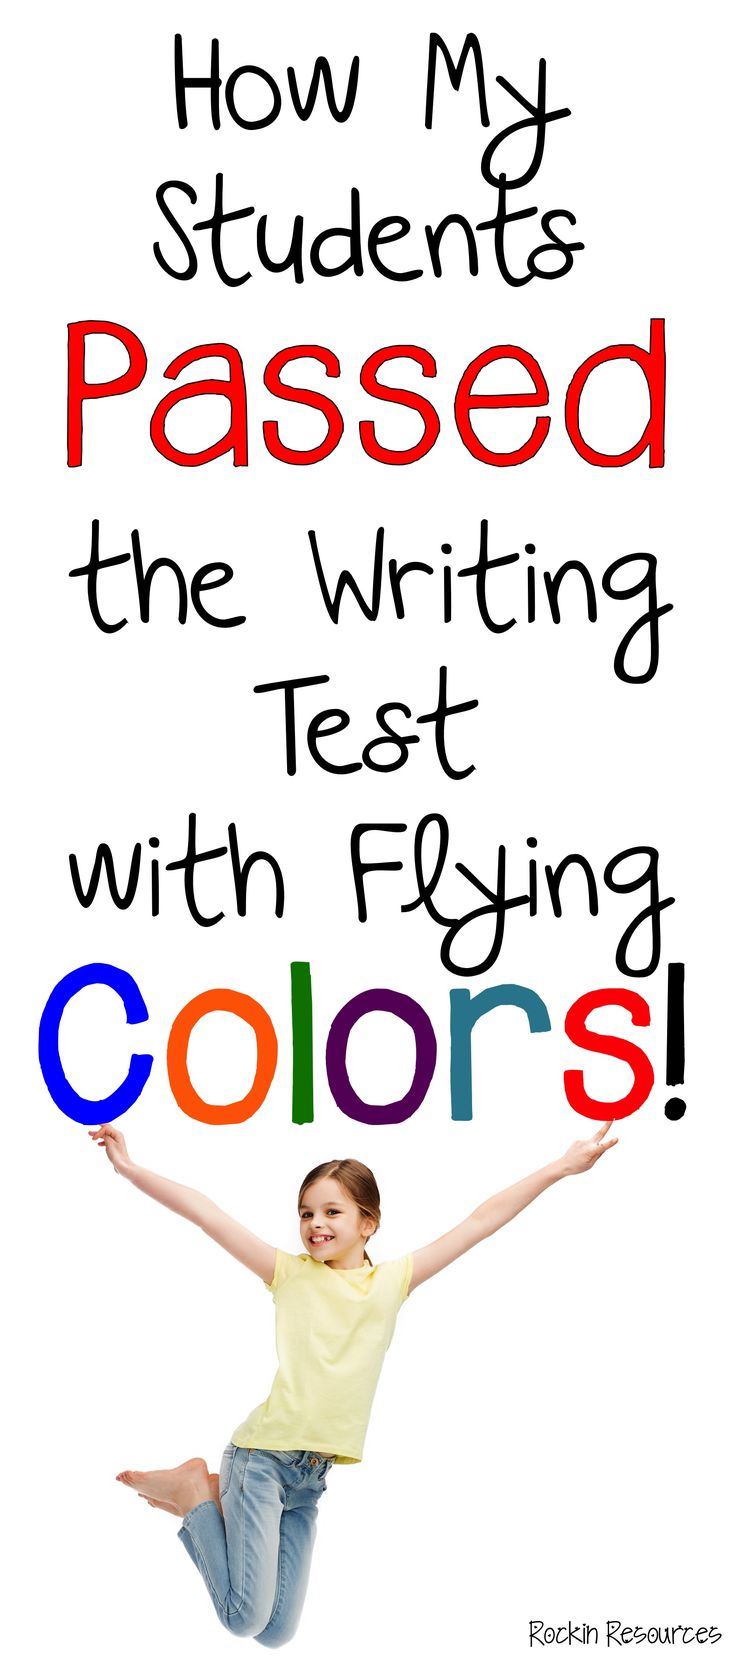 Awesome ideas to teach writing! PASS THAT TEST!